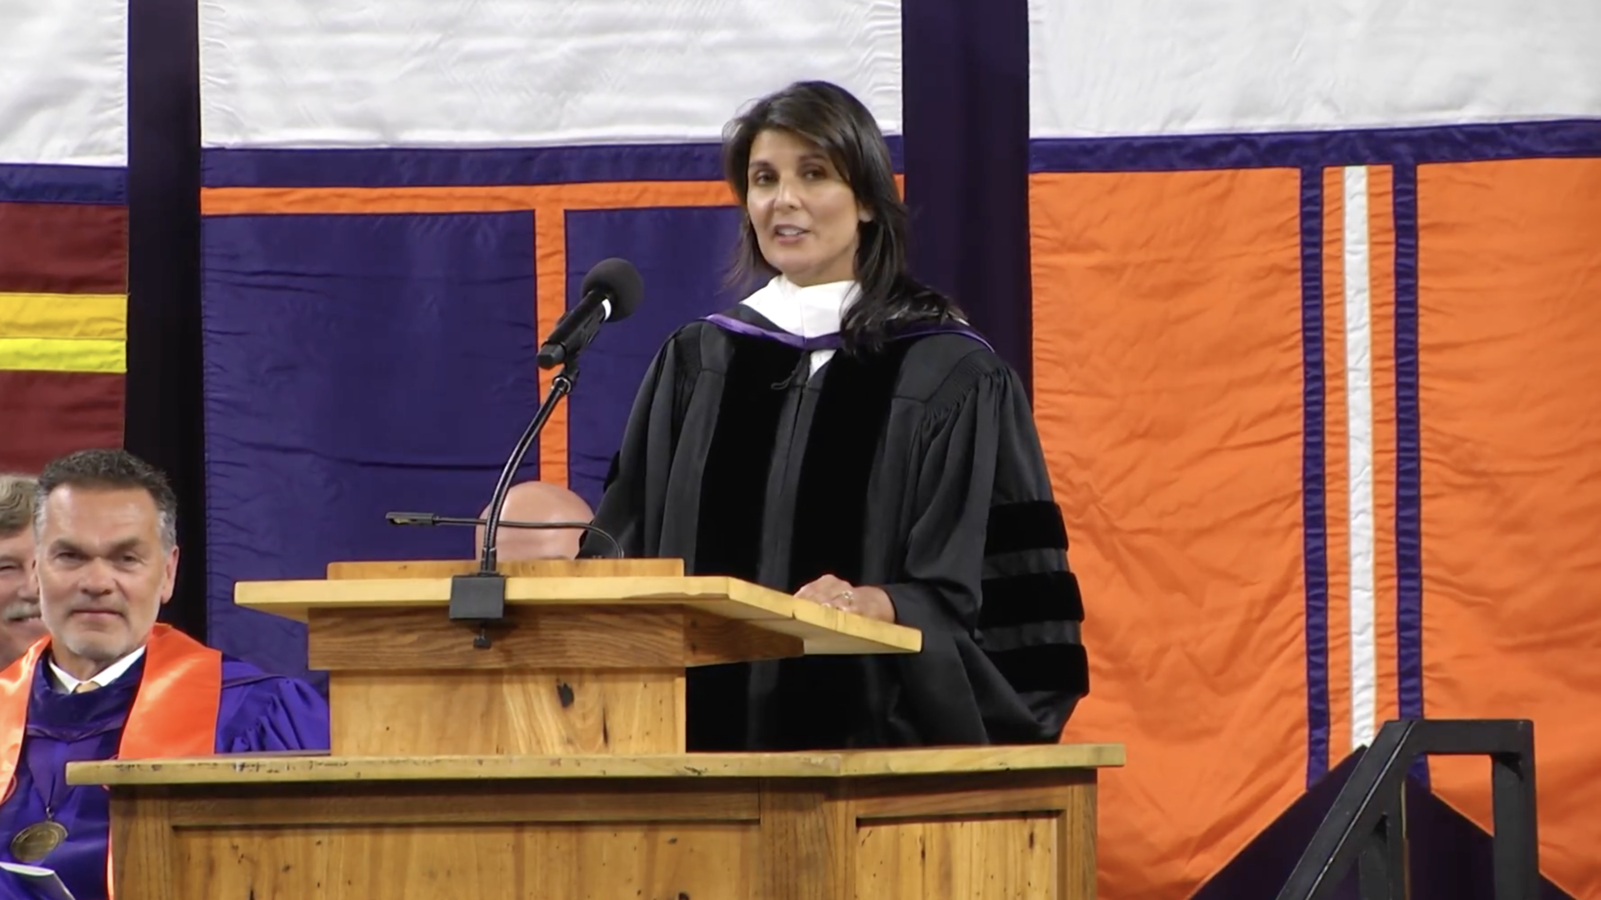 Nikki Haley to Clemson's Class of 2018: 'Social media lives aren't the real world'